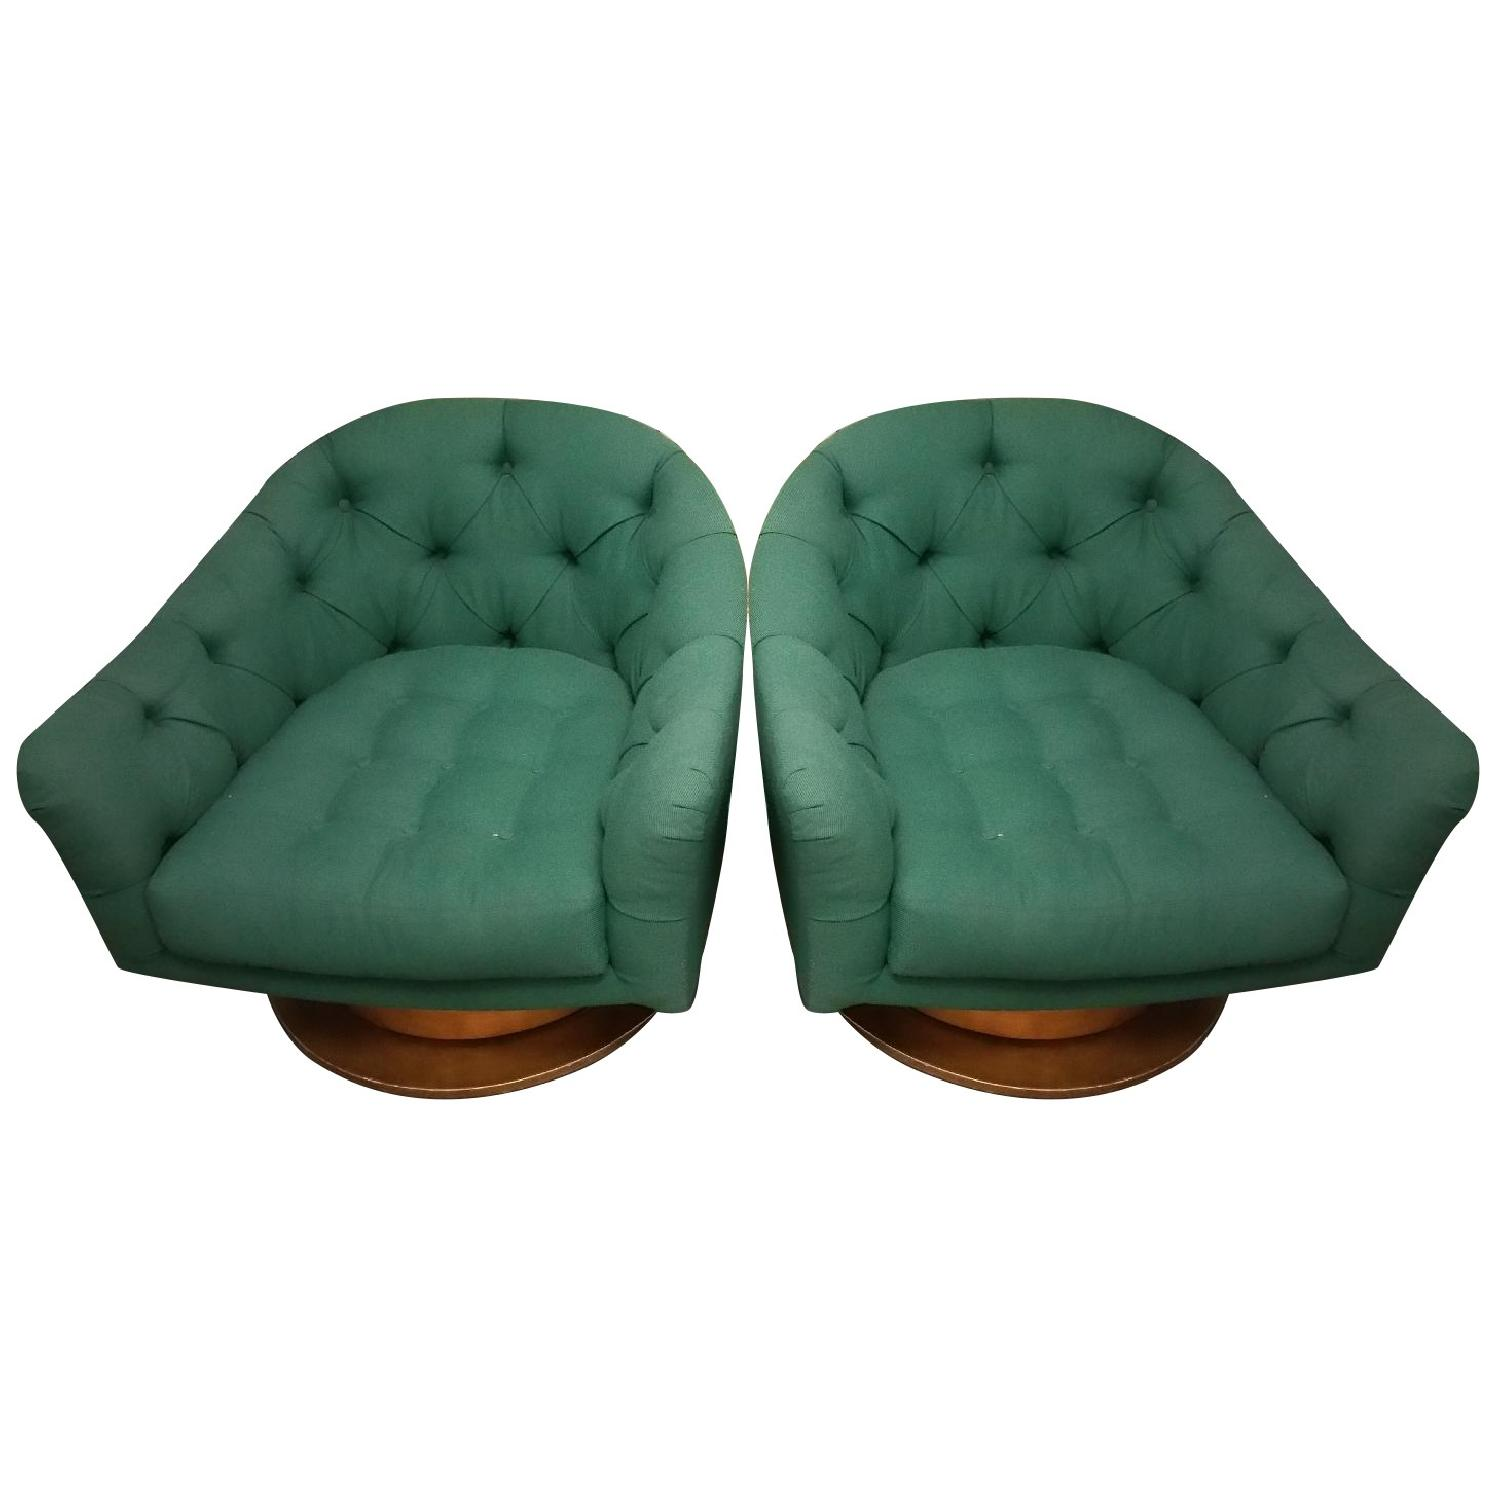 Emerald Green Swivel Tub Chairs - Pair - image-0